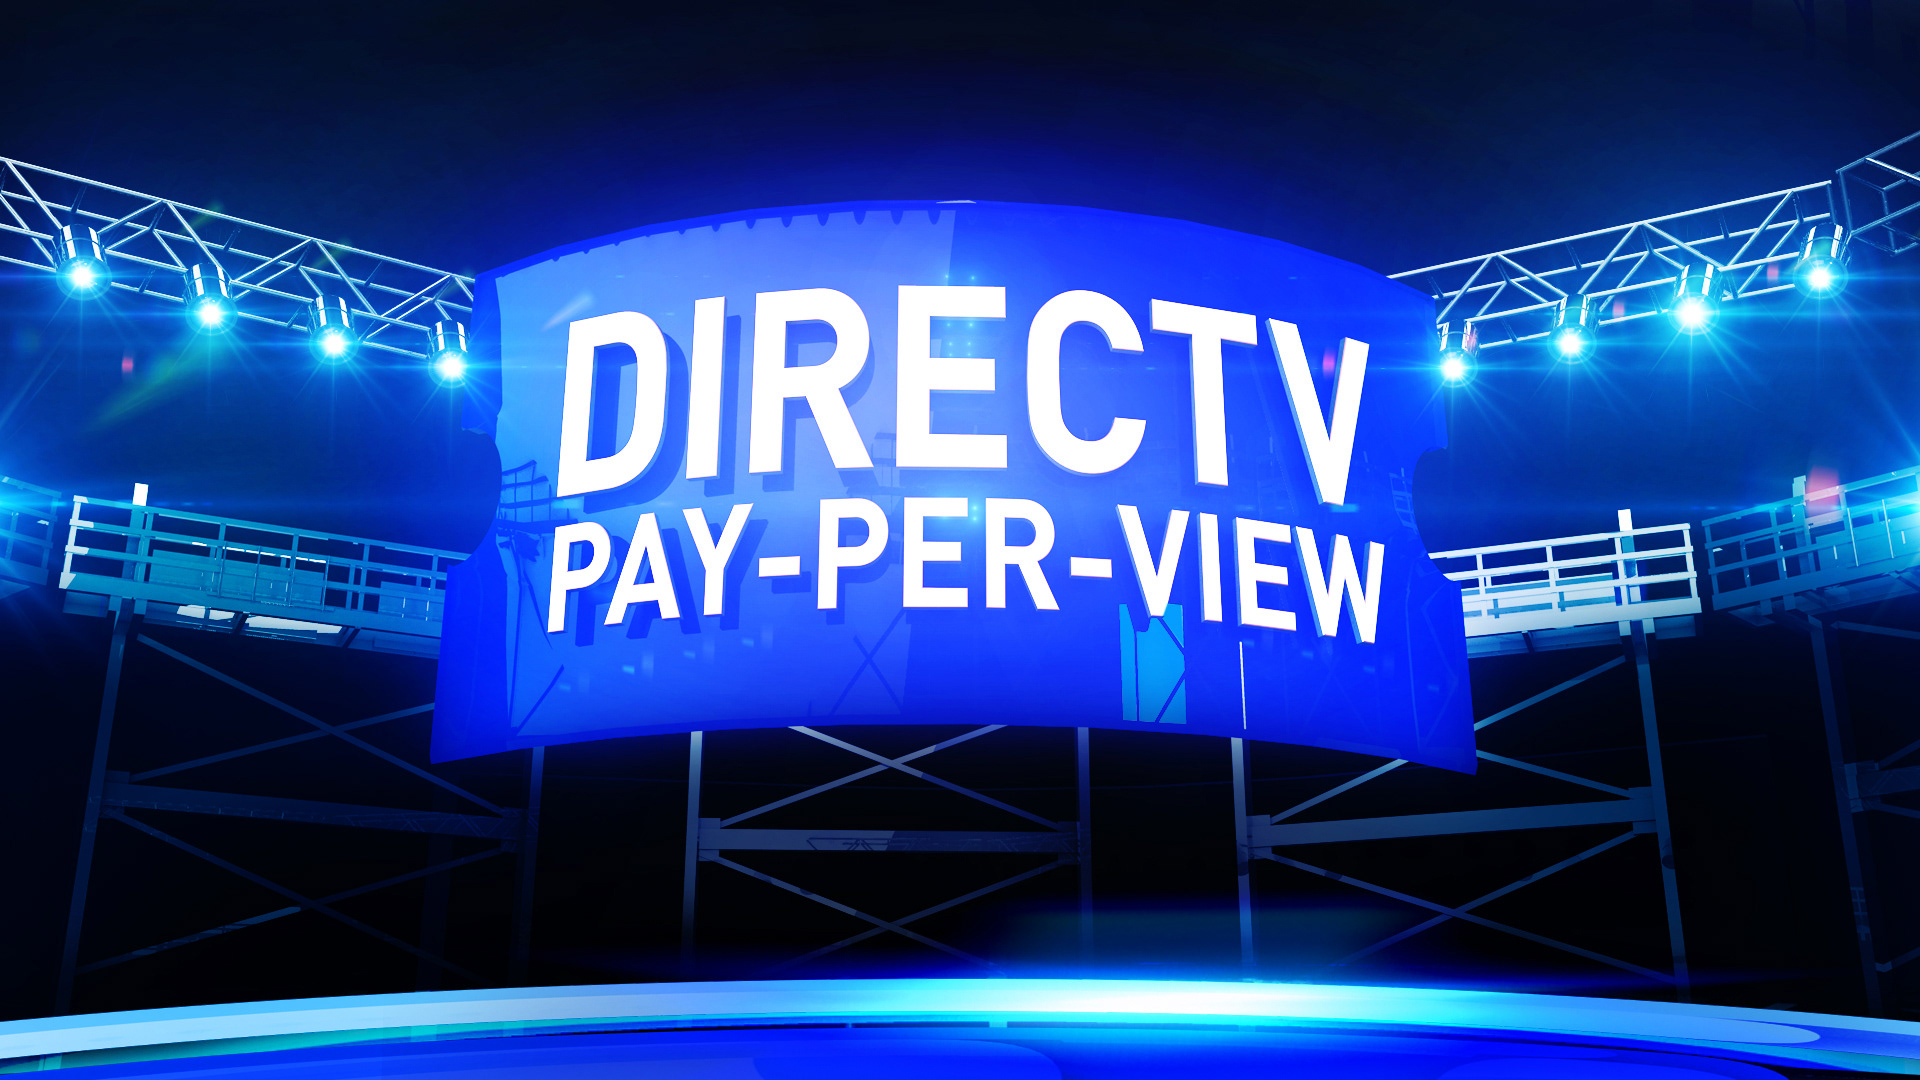 Design pitch for Directv Pay-Per-View rebrand.